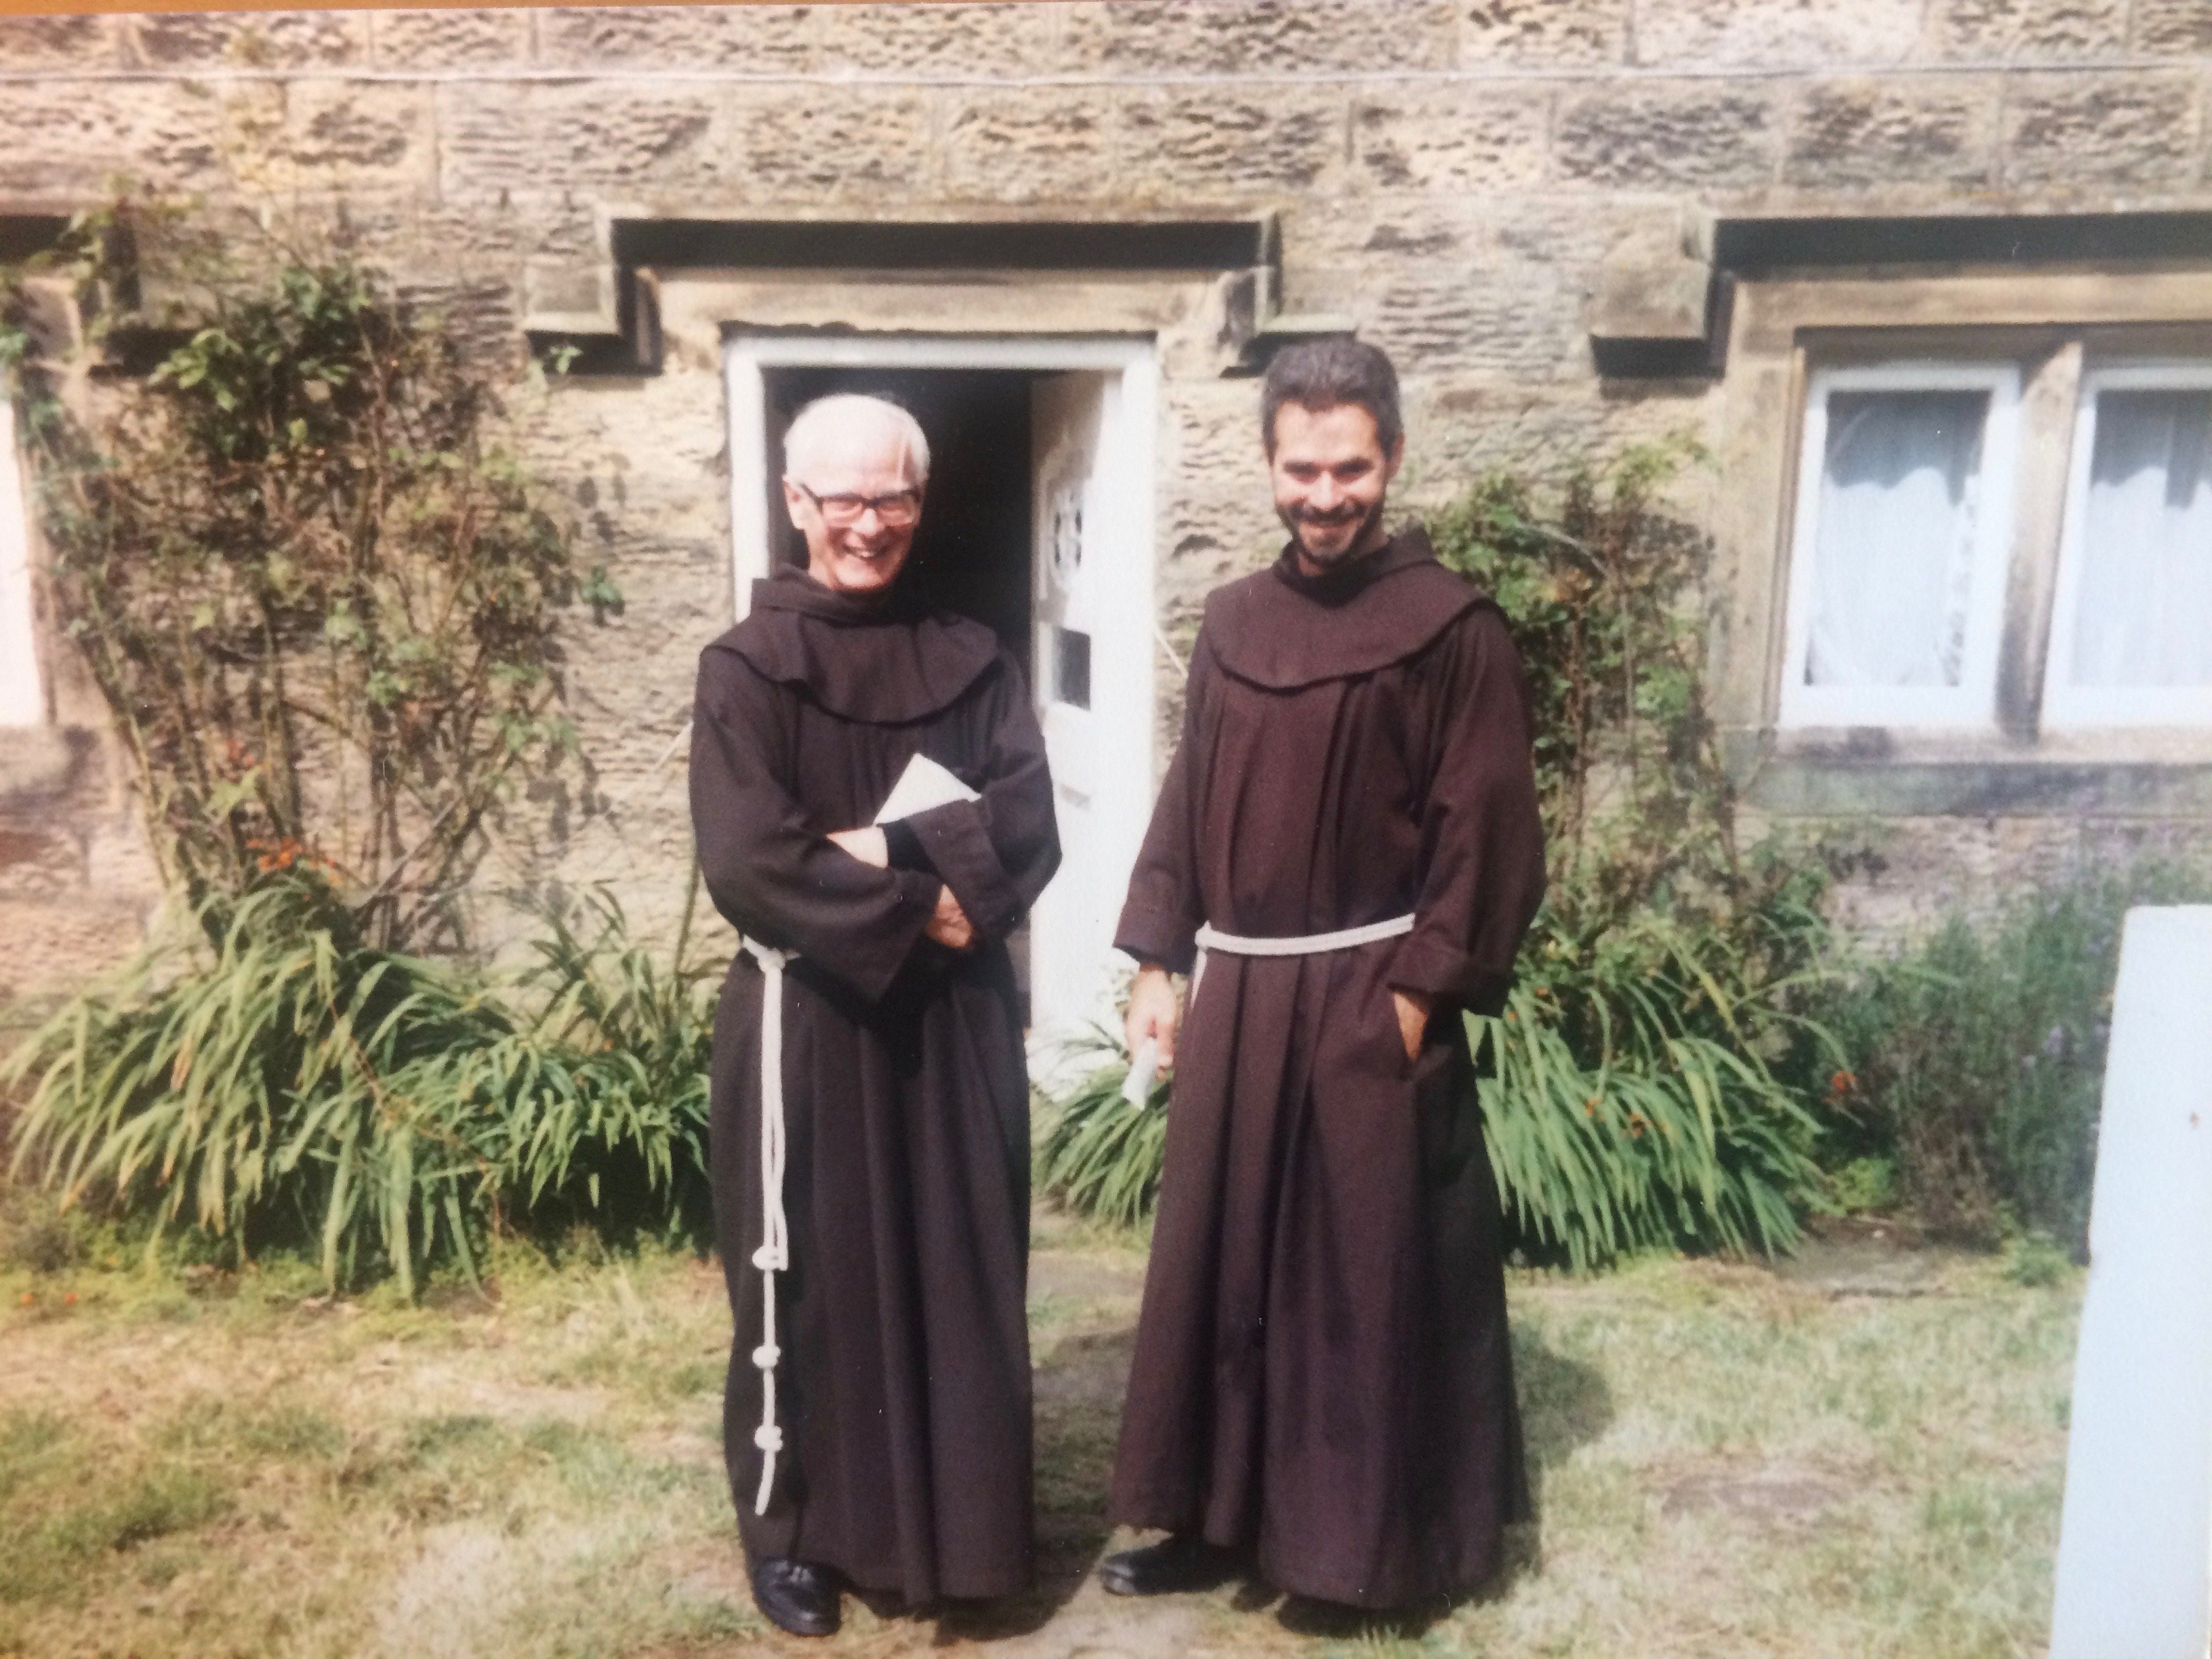 Ignatius standing with Friar Martyn Jeffs